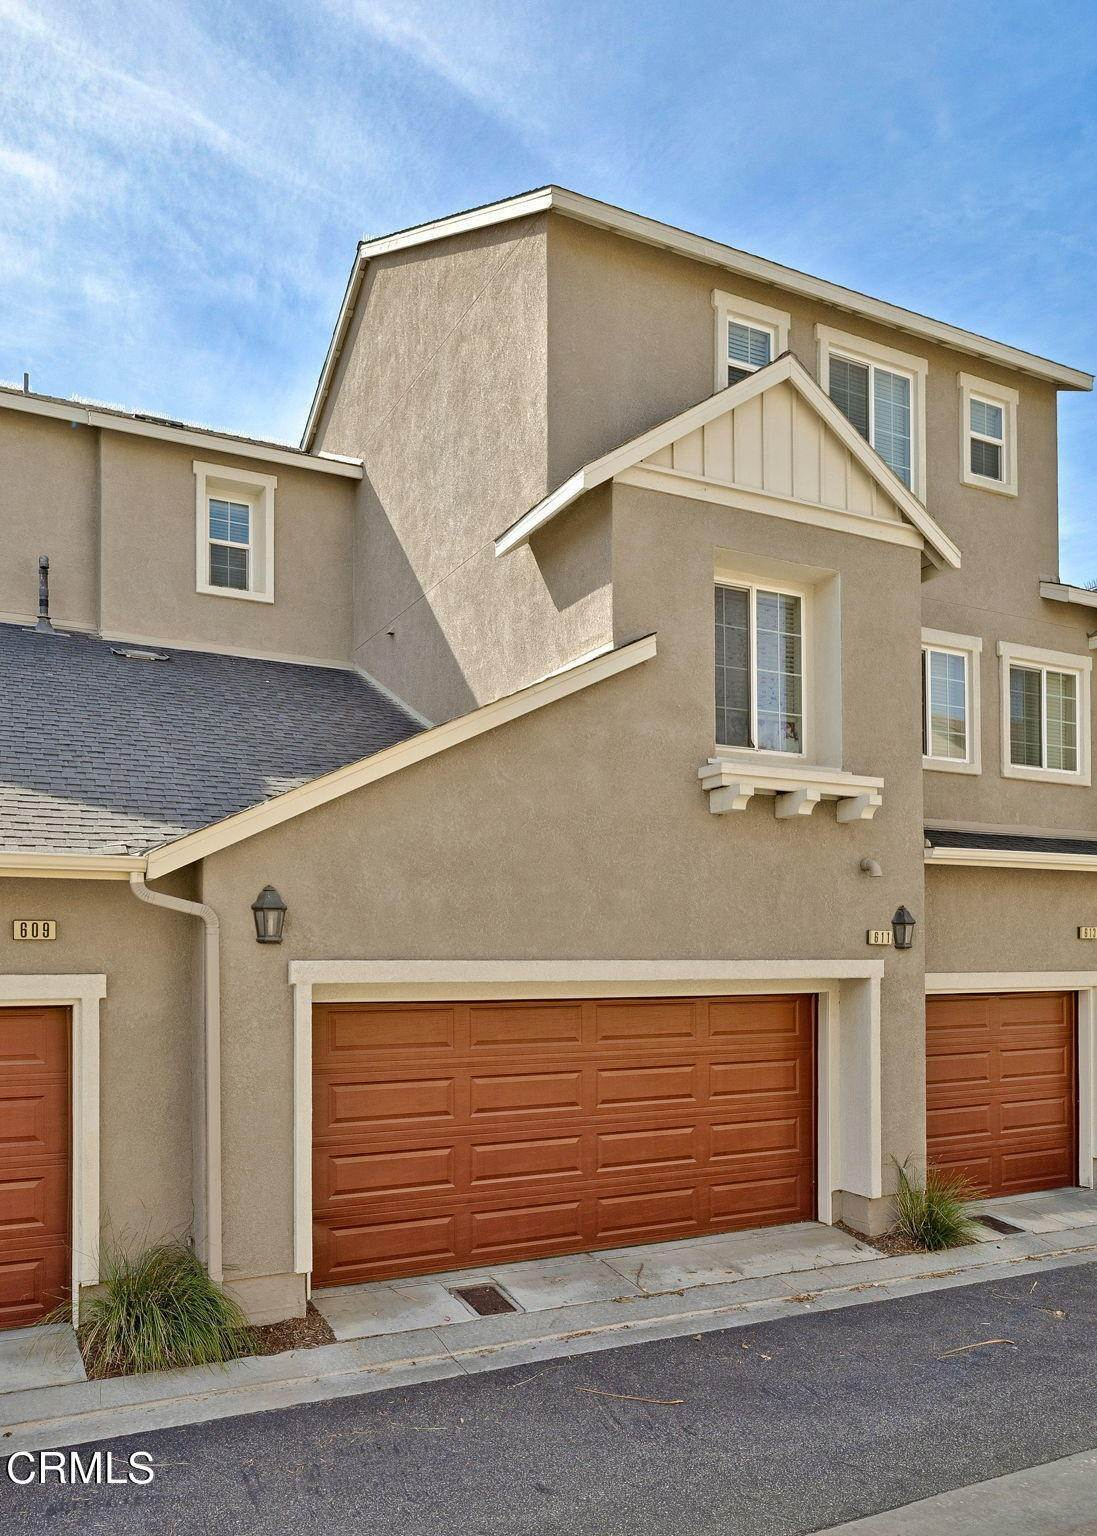 22. Condominiums for Sale at 611 Flathead River Street Oxnard, California 93036 United States